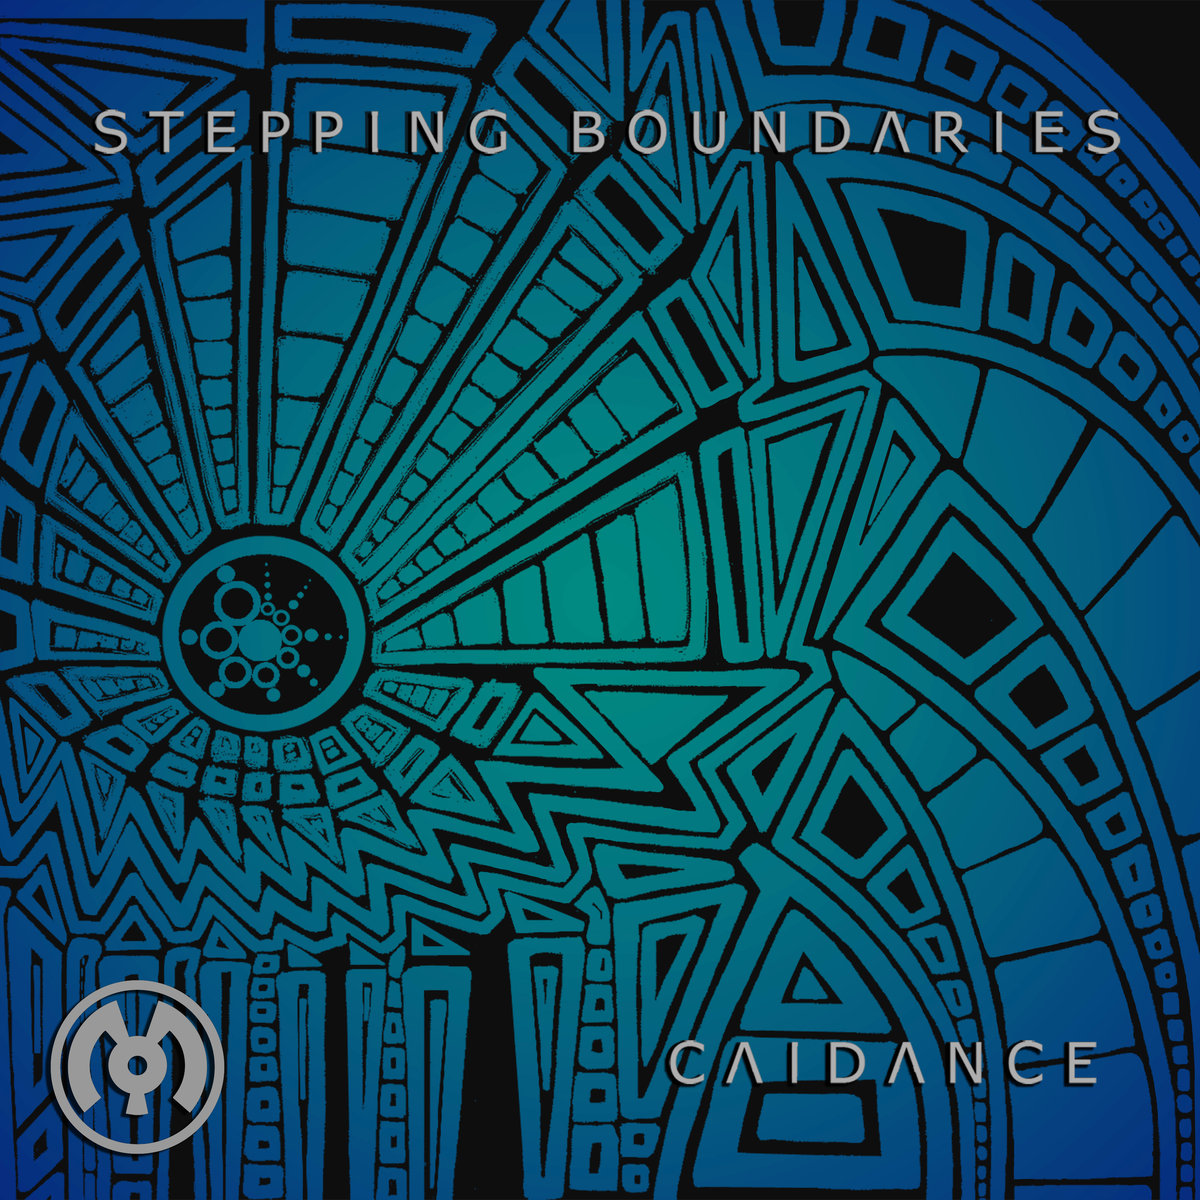 Caidance - Special Vibration @ 'Stepping Boundaries' album (electronic, dubstep)